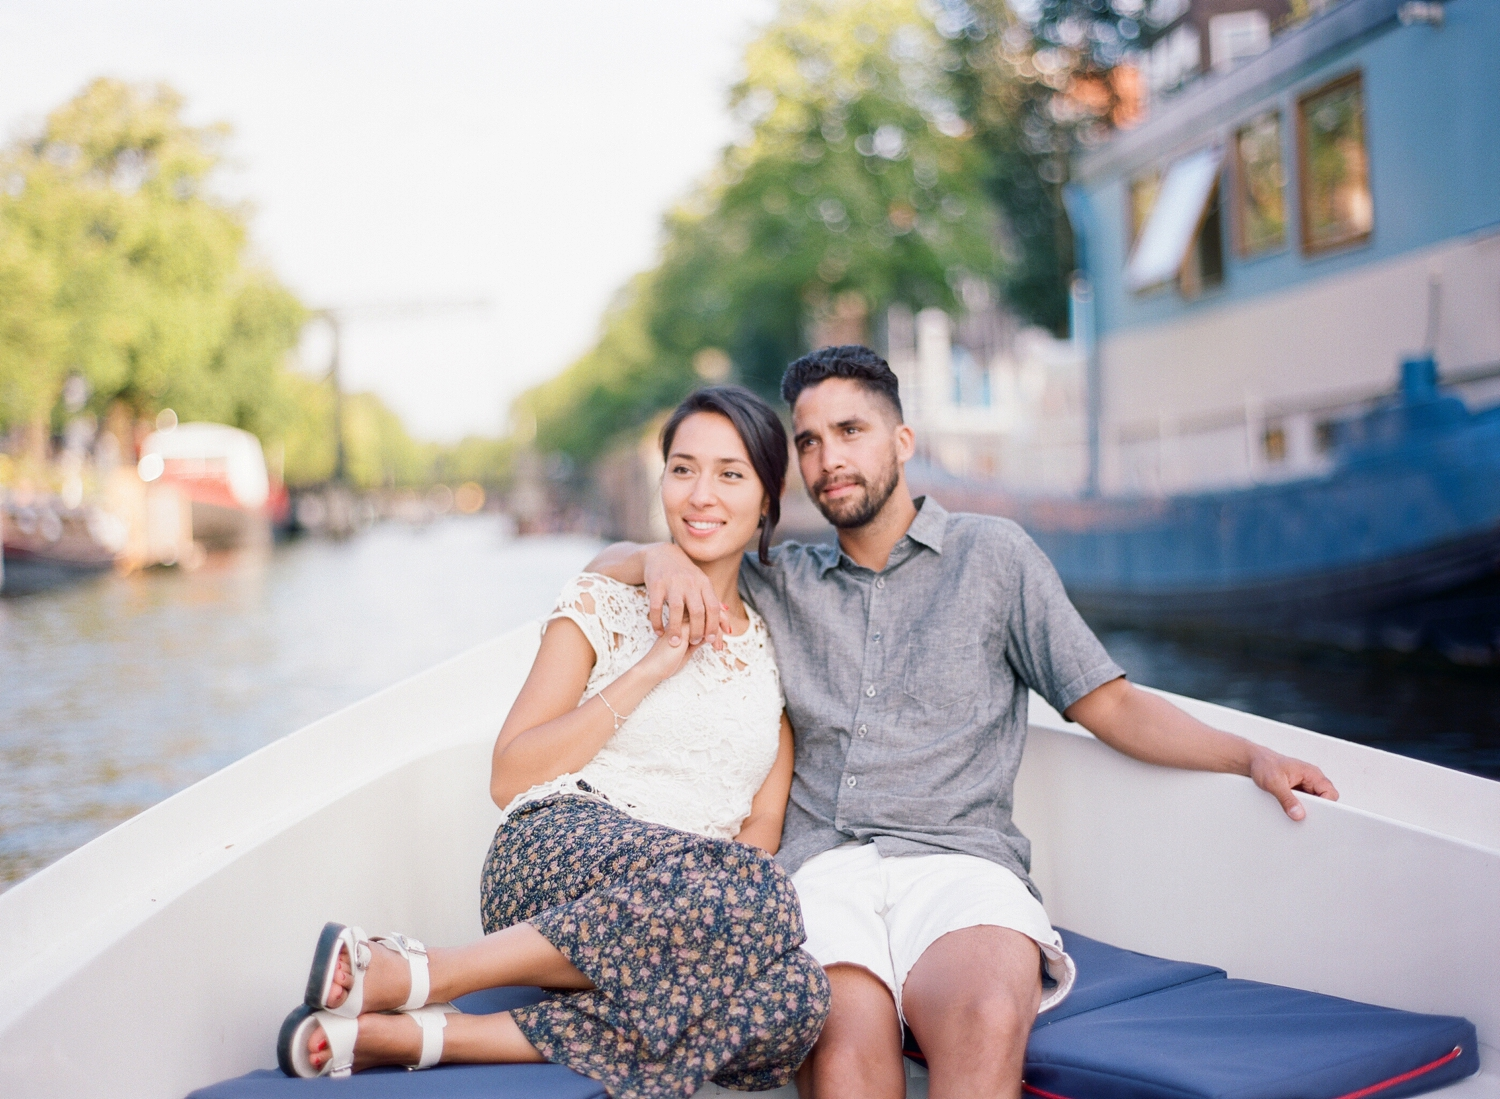 Amsterdam Canals Photo Shoot